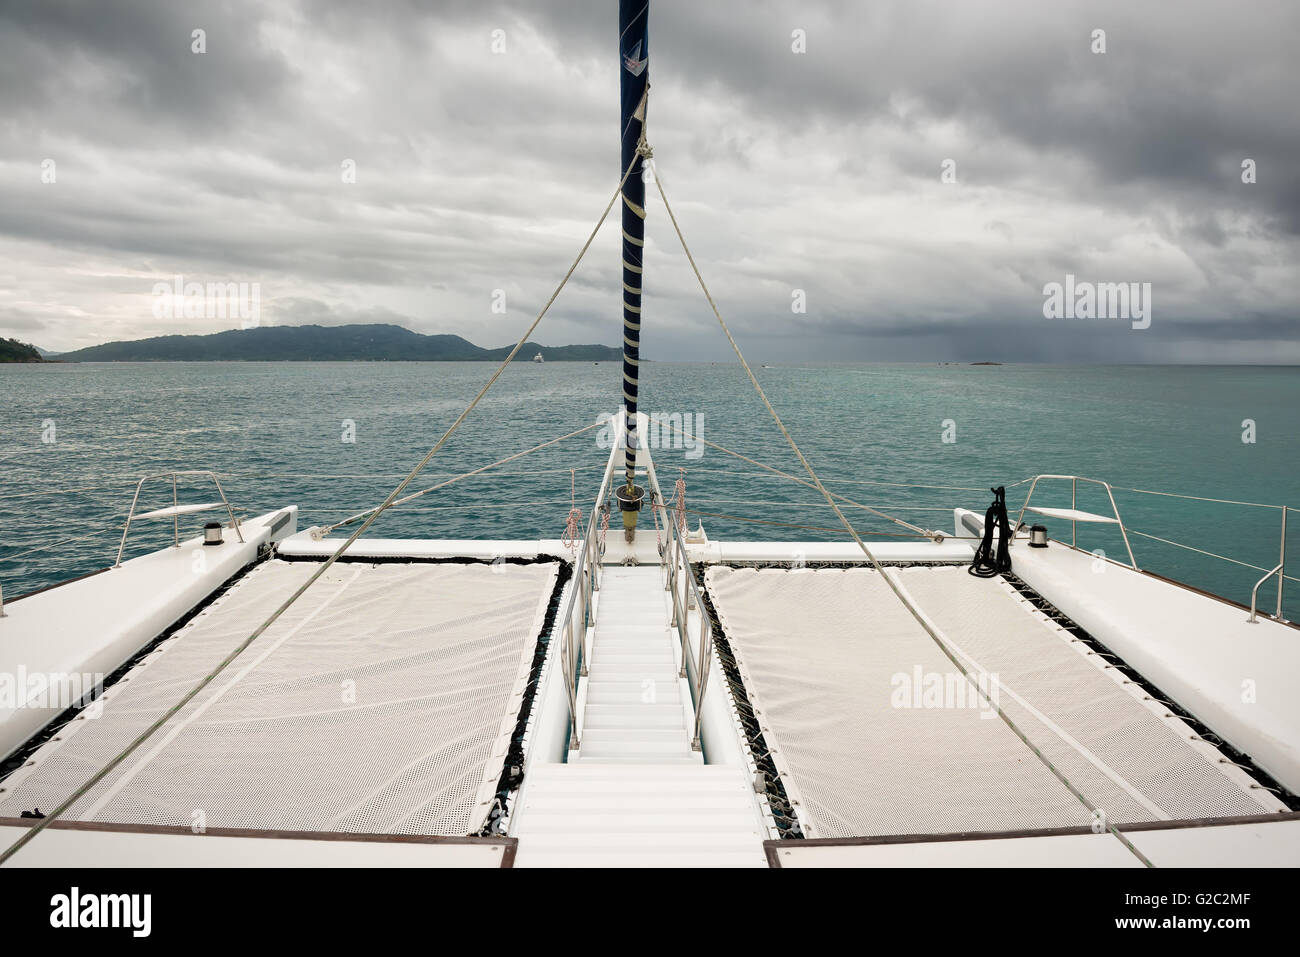 on board of a sailing catamaran towards the rain - Stock Image